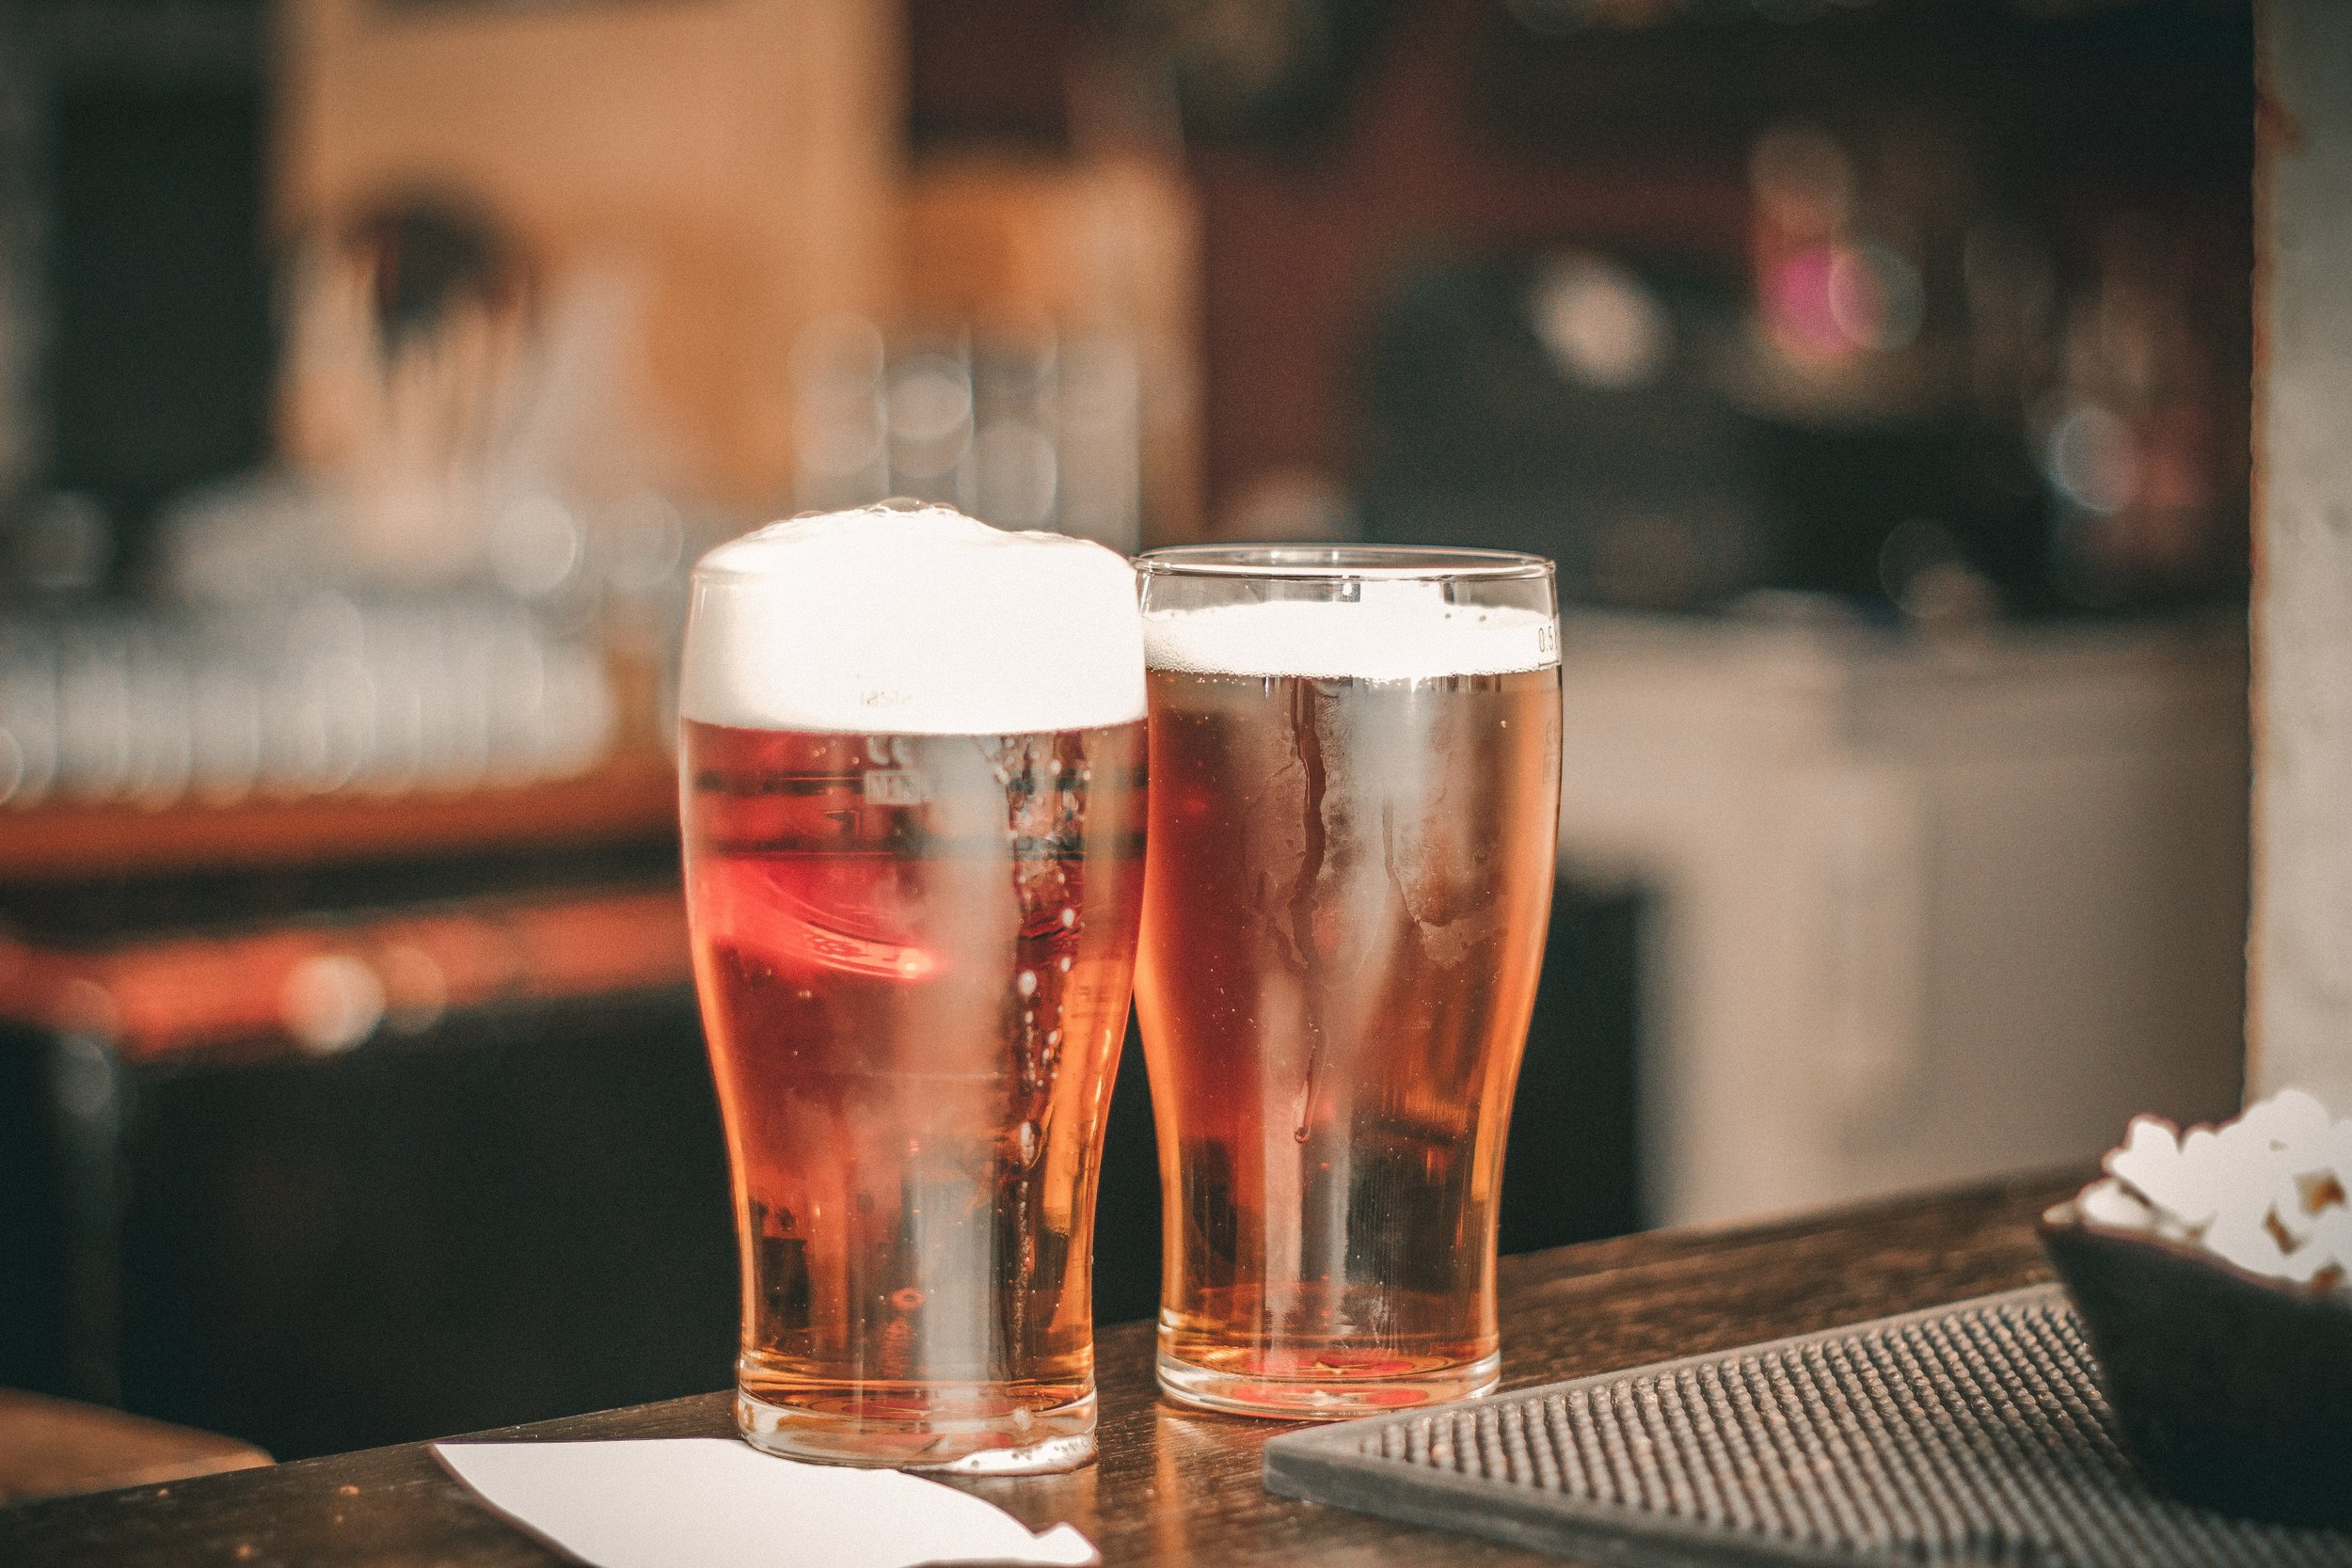 Why we need more pubs - entrepreneurial dreamers   Financial Post  26 January 2019